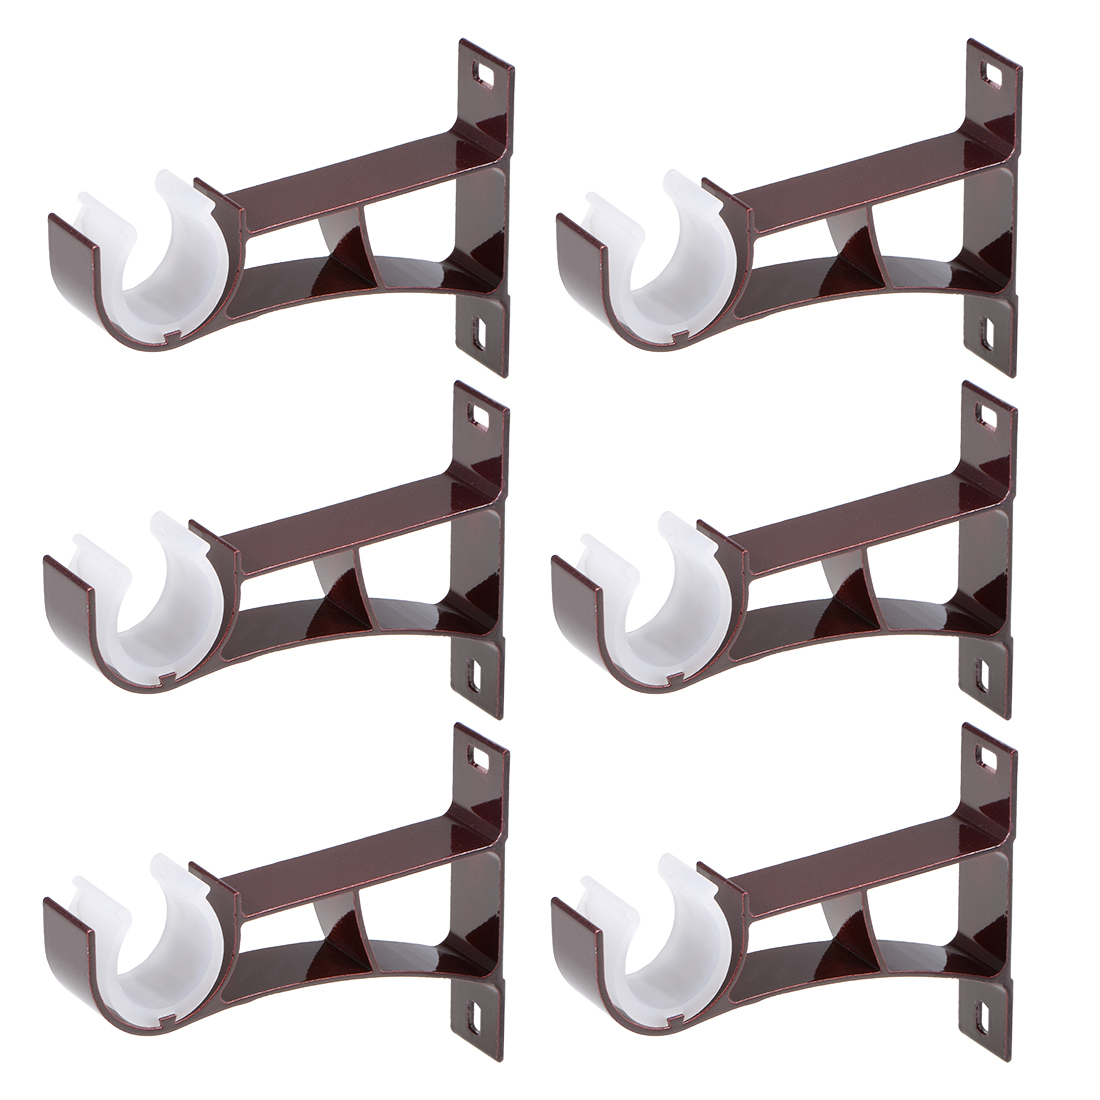 Curtain Rod Bracket Single Holder for 24mm Rod, 108 x 78 x 19mm Dark Red 6 Sets